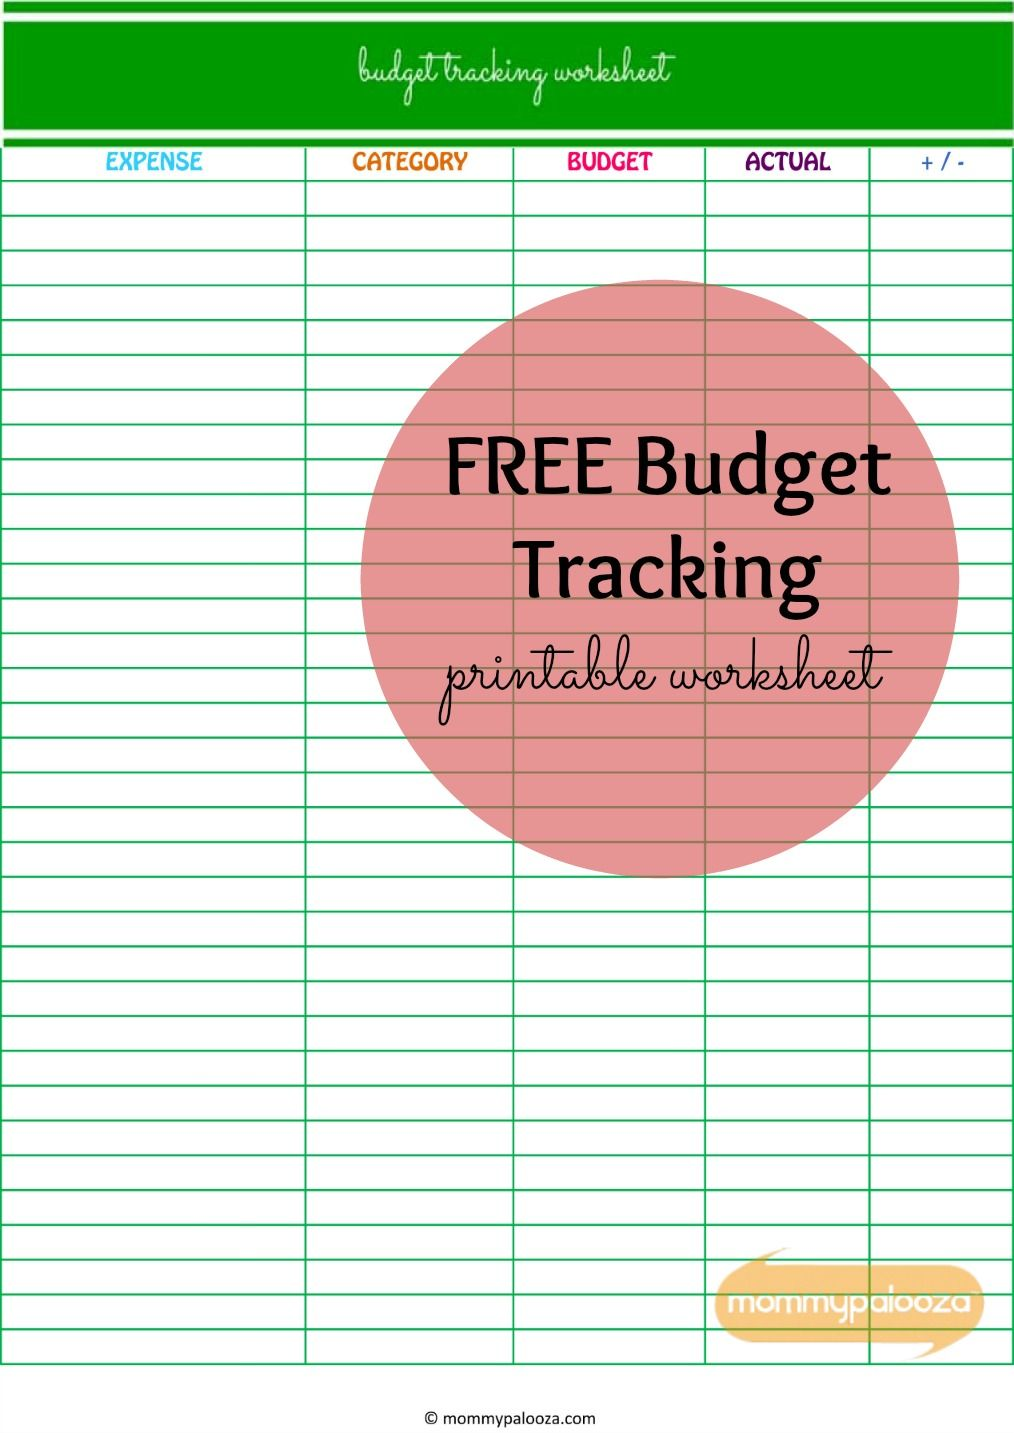 Worksheets Get Out Of Debt Budget Worksheet how payoff can help you get out of debt and free printable budget tracking worksheet payoffmindset